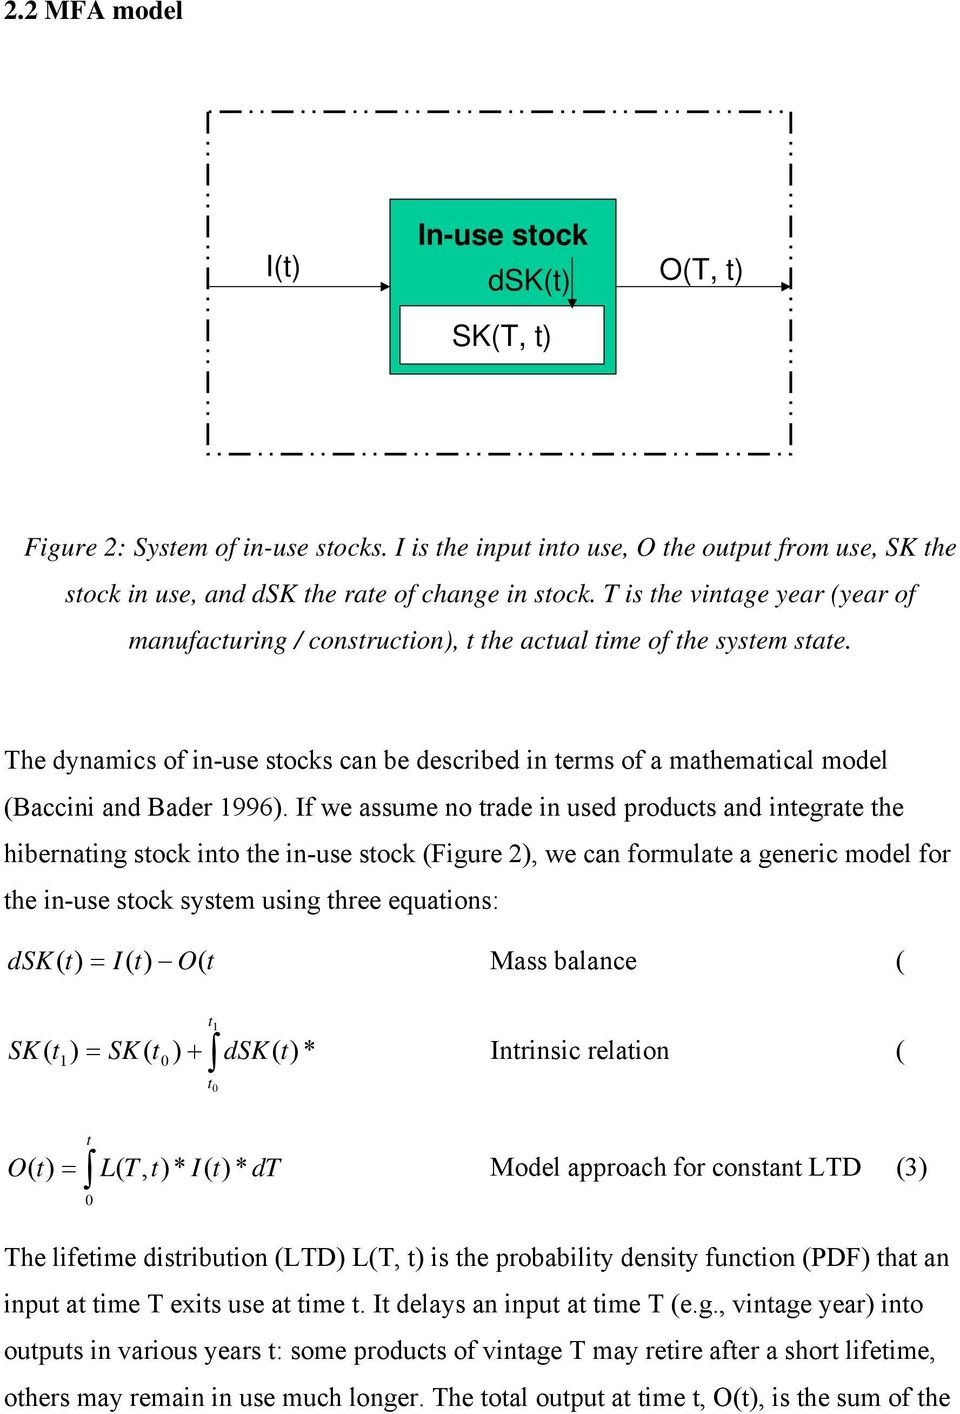 The dynamics of in-use stocks can be described in terms of a mathematical model (Baccini and Bader 1996).